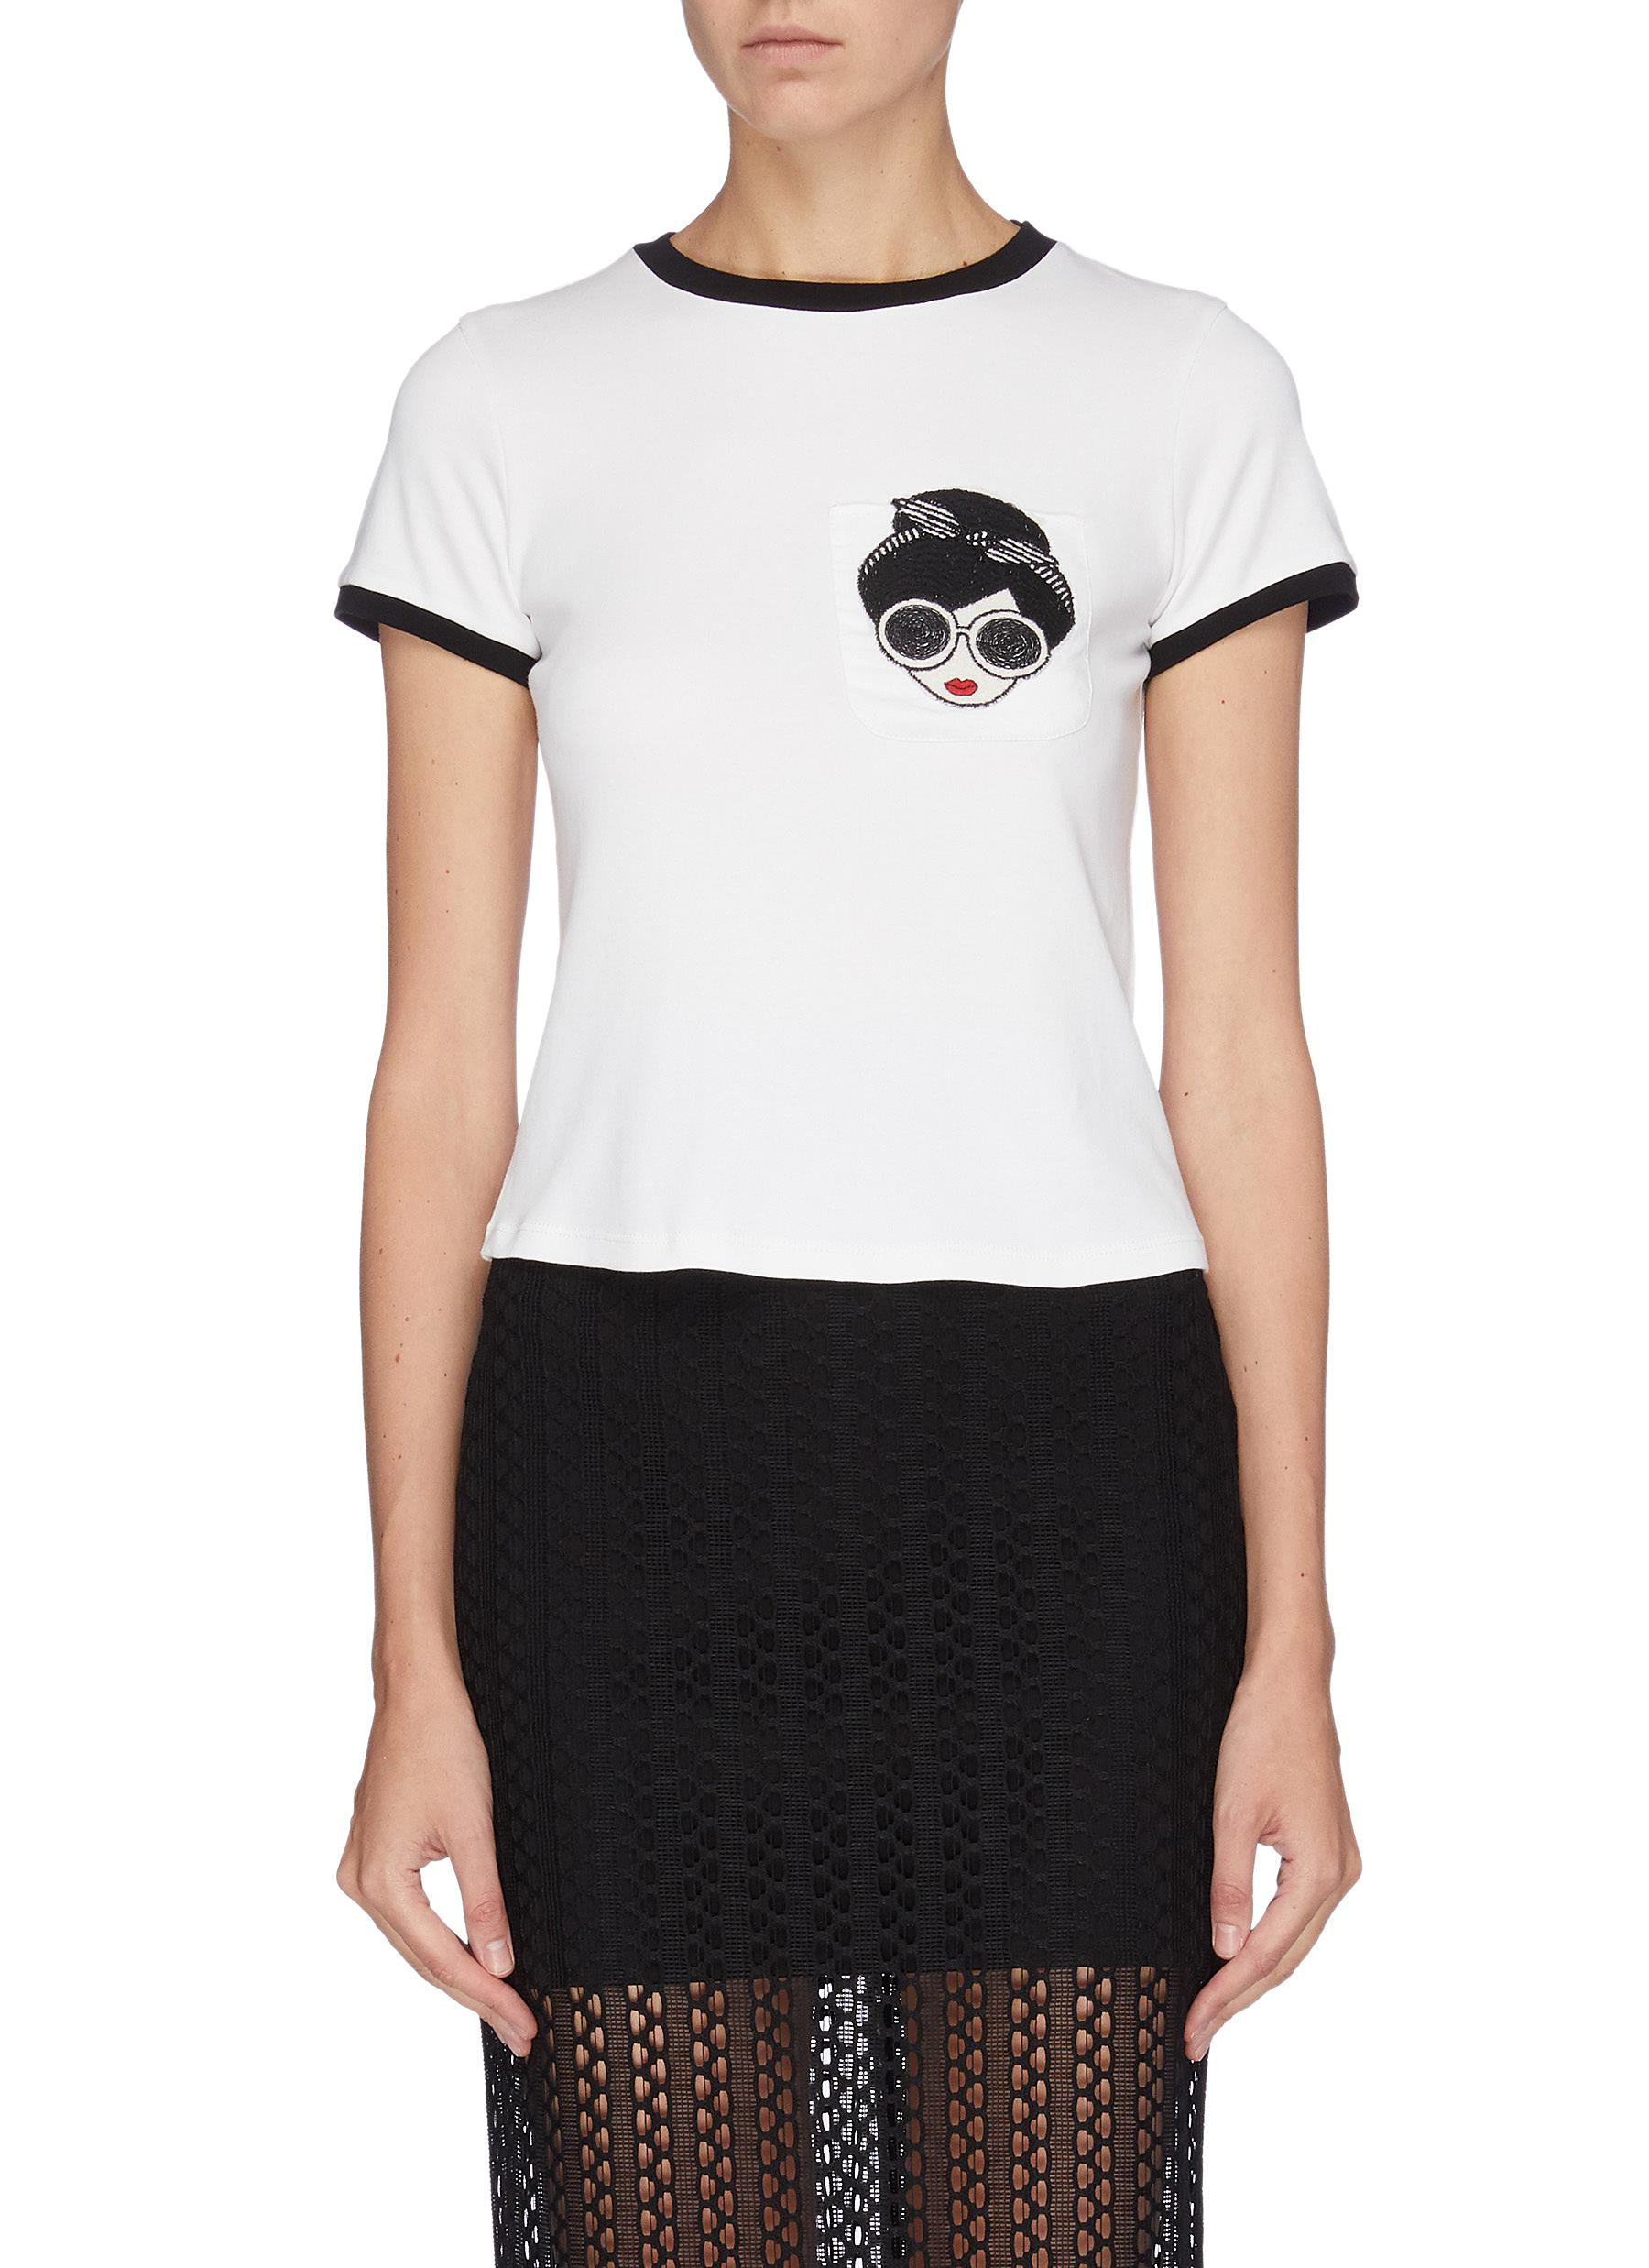 Rylyn Stacey patched T-shirt by Alice + Olivia